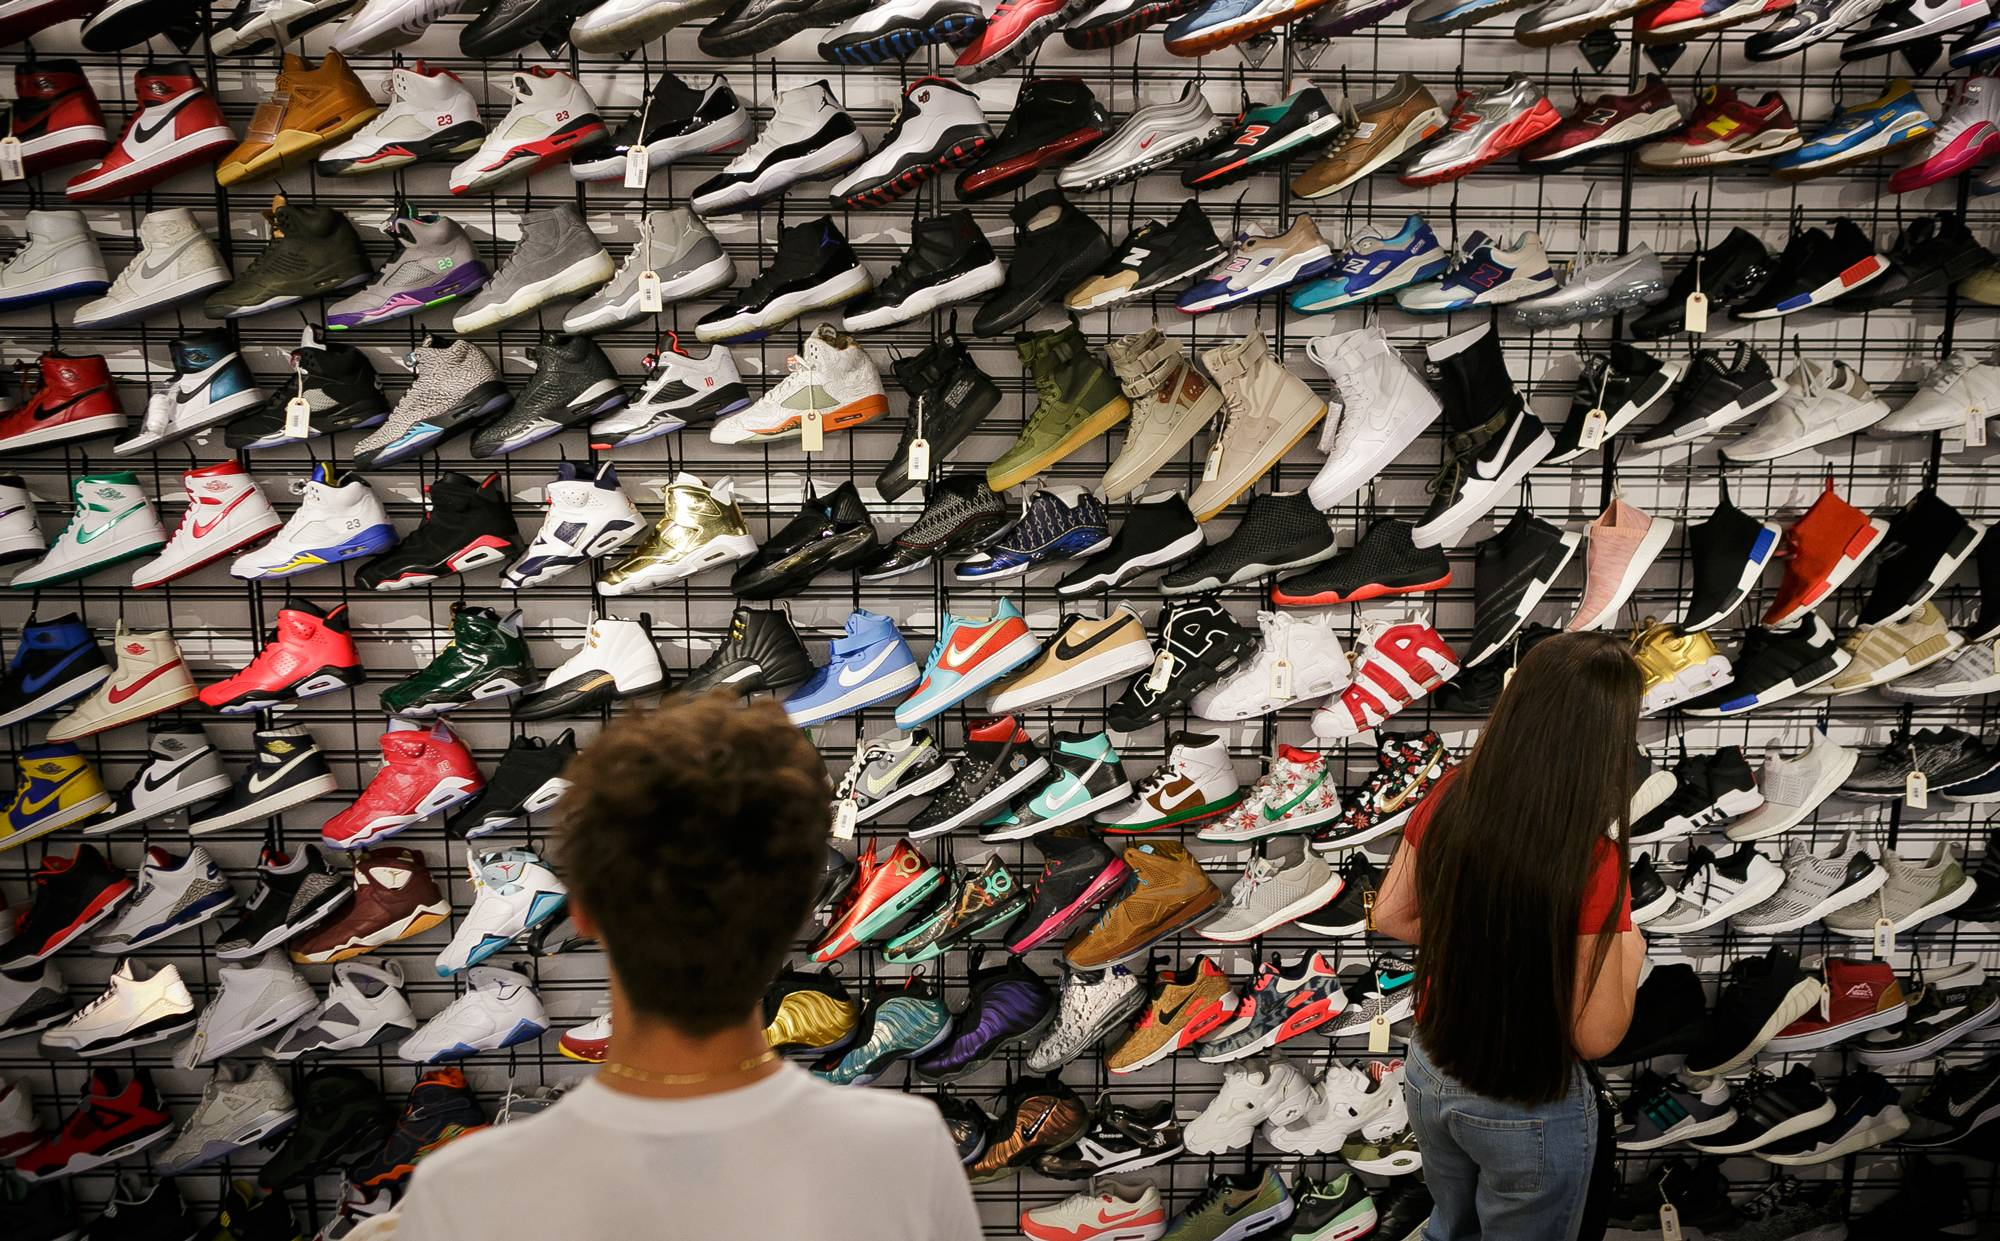 The Italian resellers and the hype market